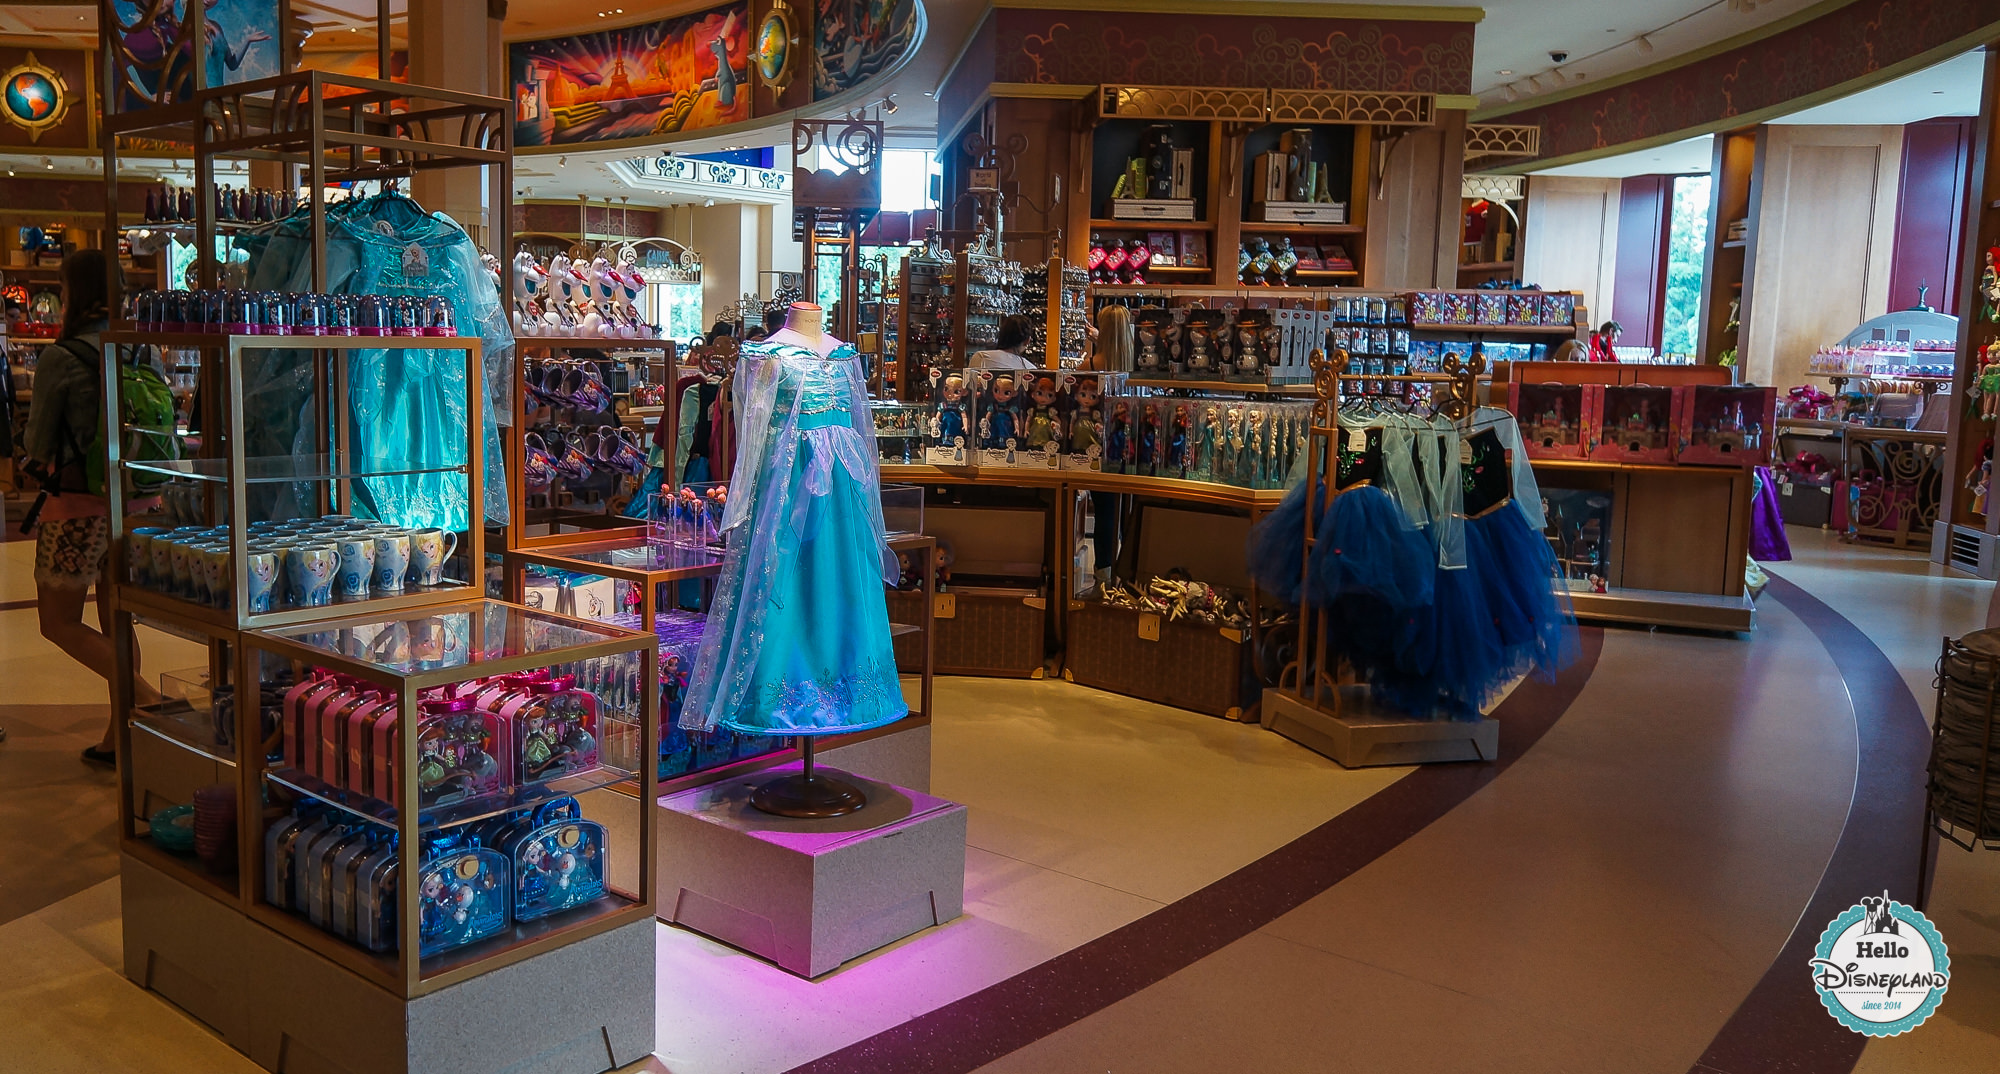 Hello disneyland le blog n 1 sur disneyland paris 9 - La riene des neiges ...